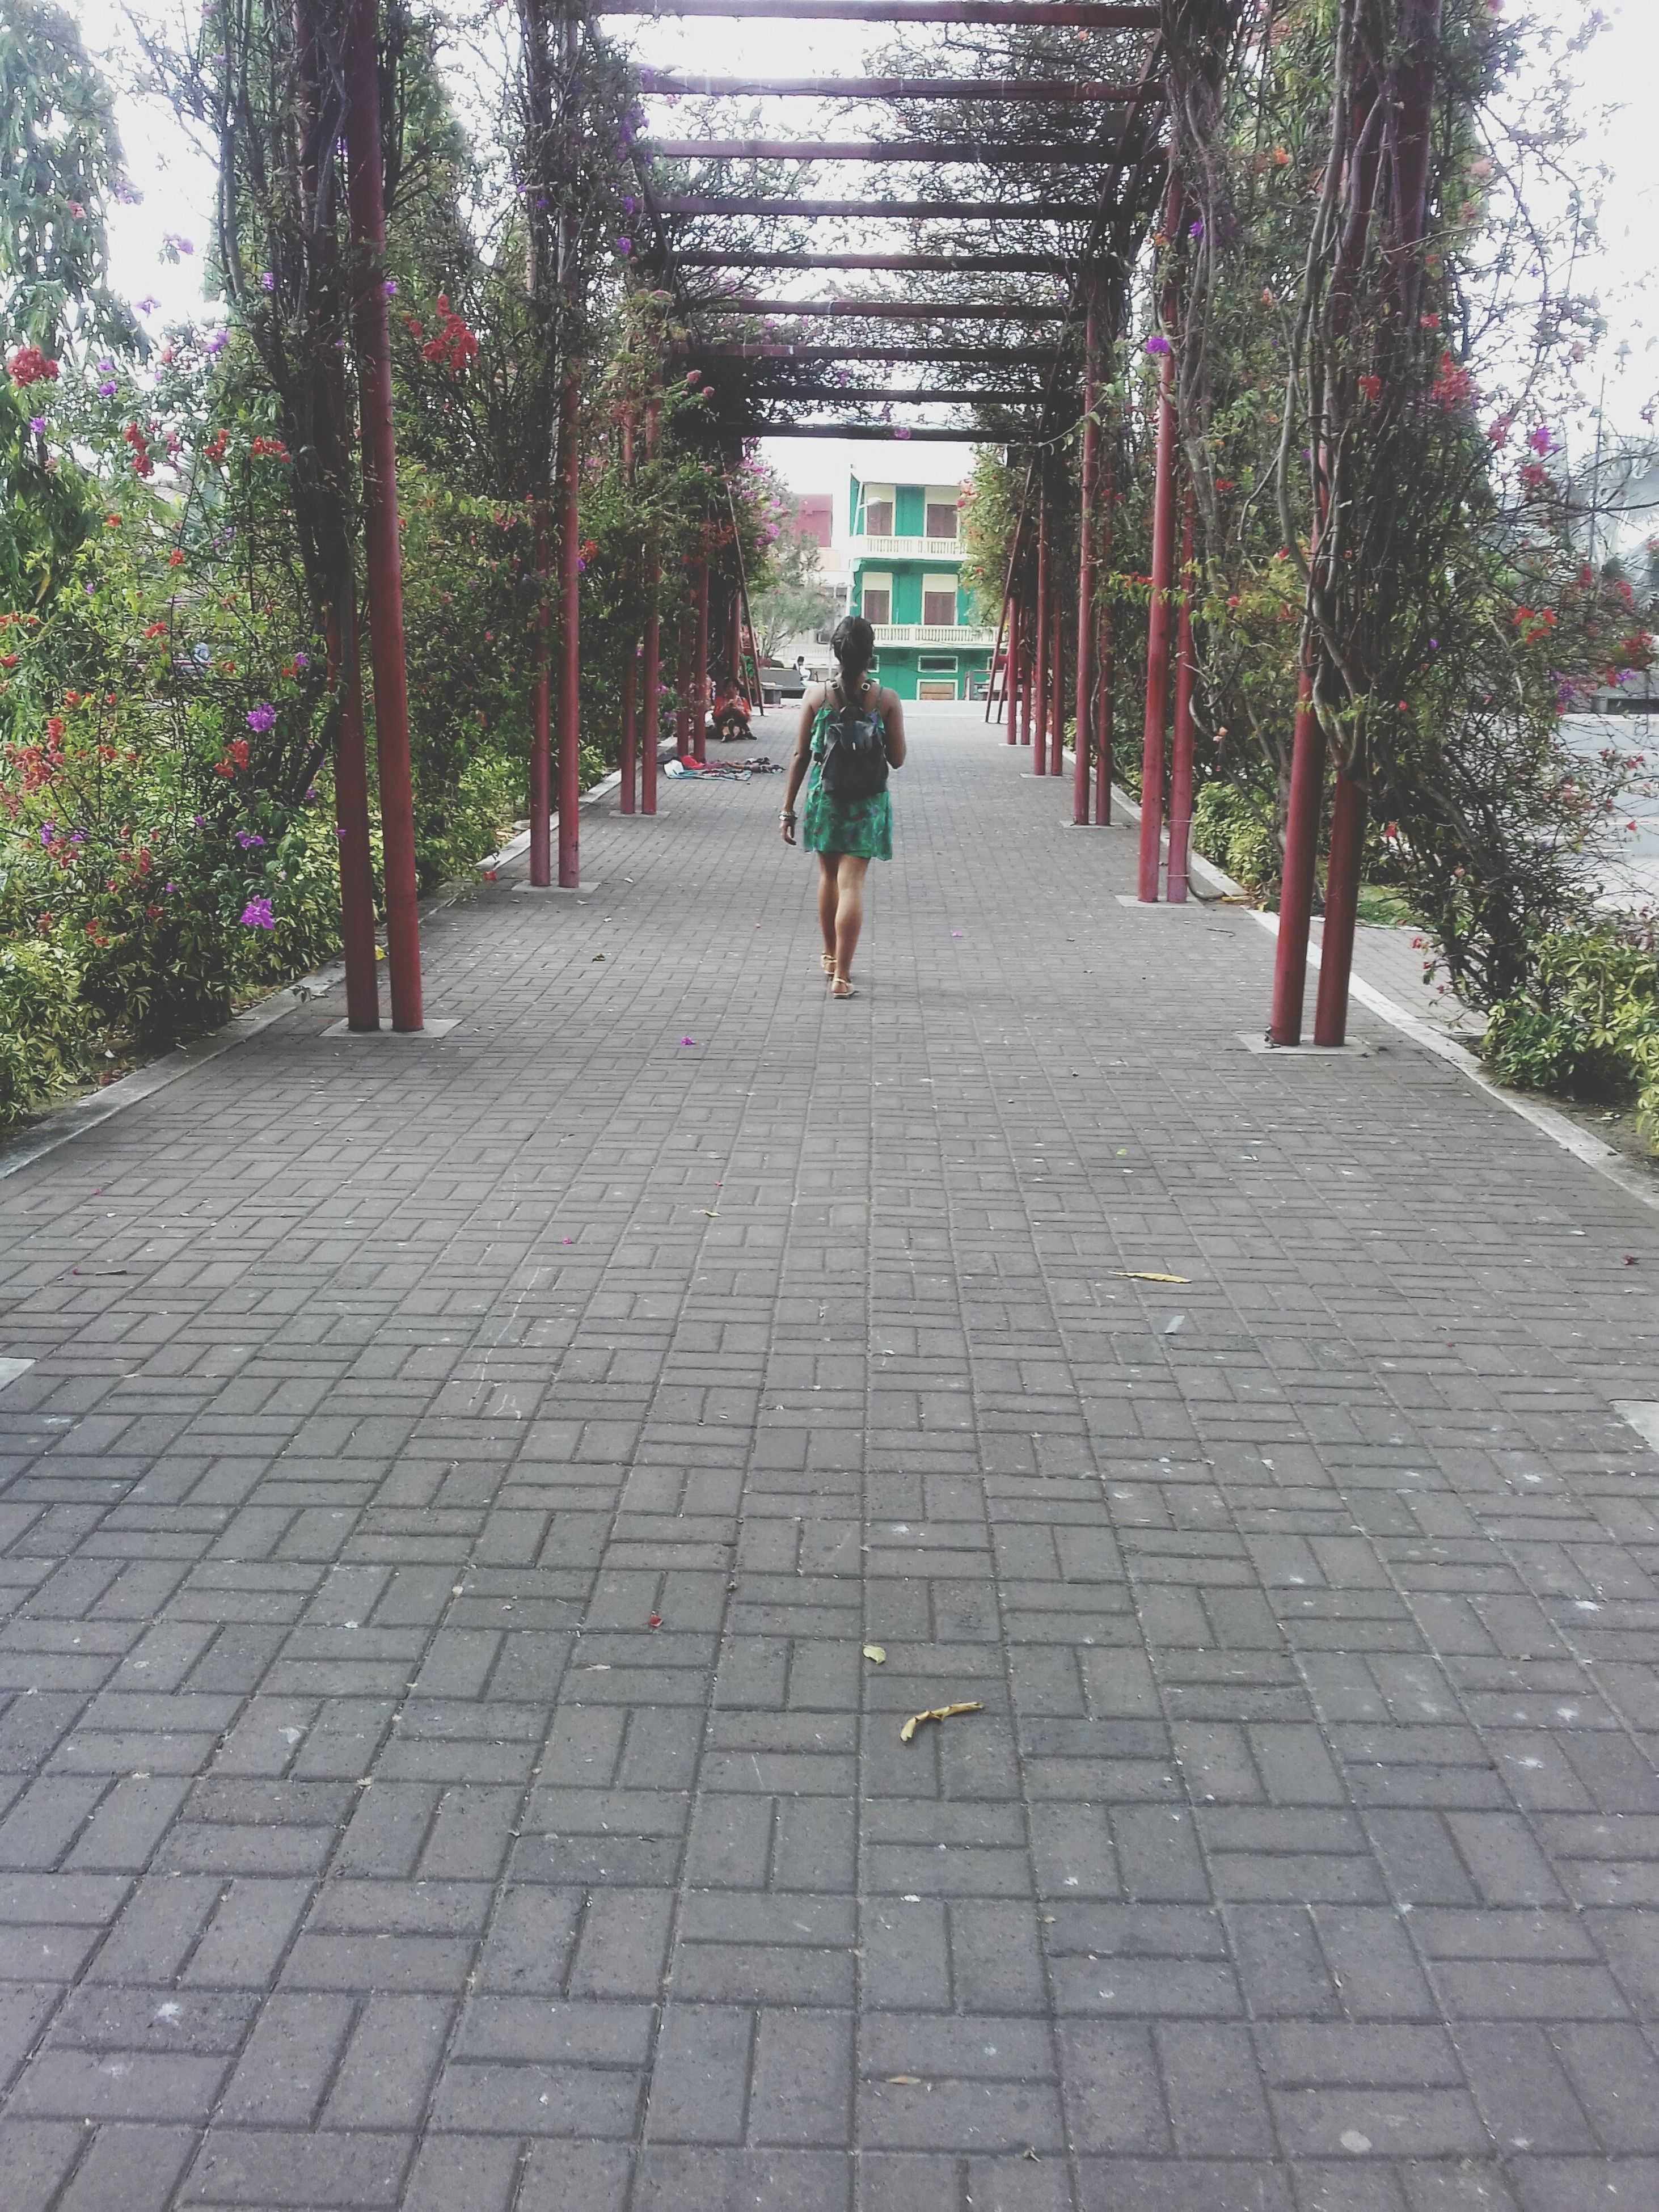 tree, lifestyles, the way forward, walking, rear view, full length, leisure activity, men, footpath, person, cobblestone, day, paving stone, park - man made space, sunlight, outdoors, walkway